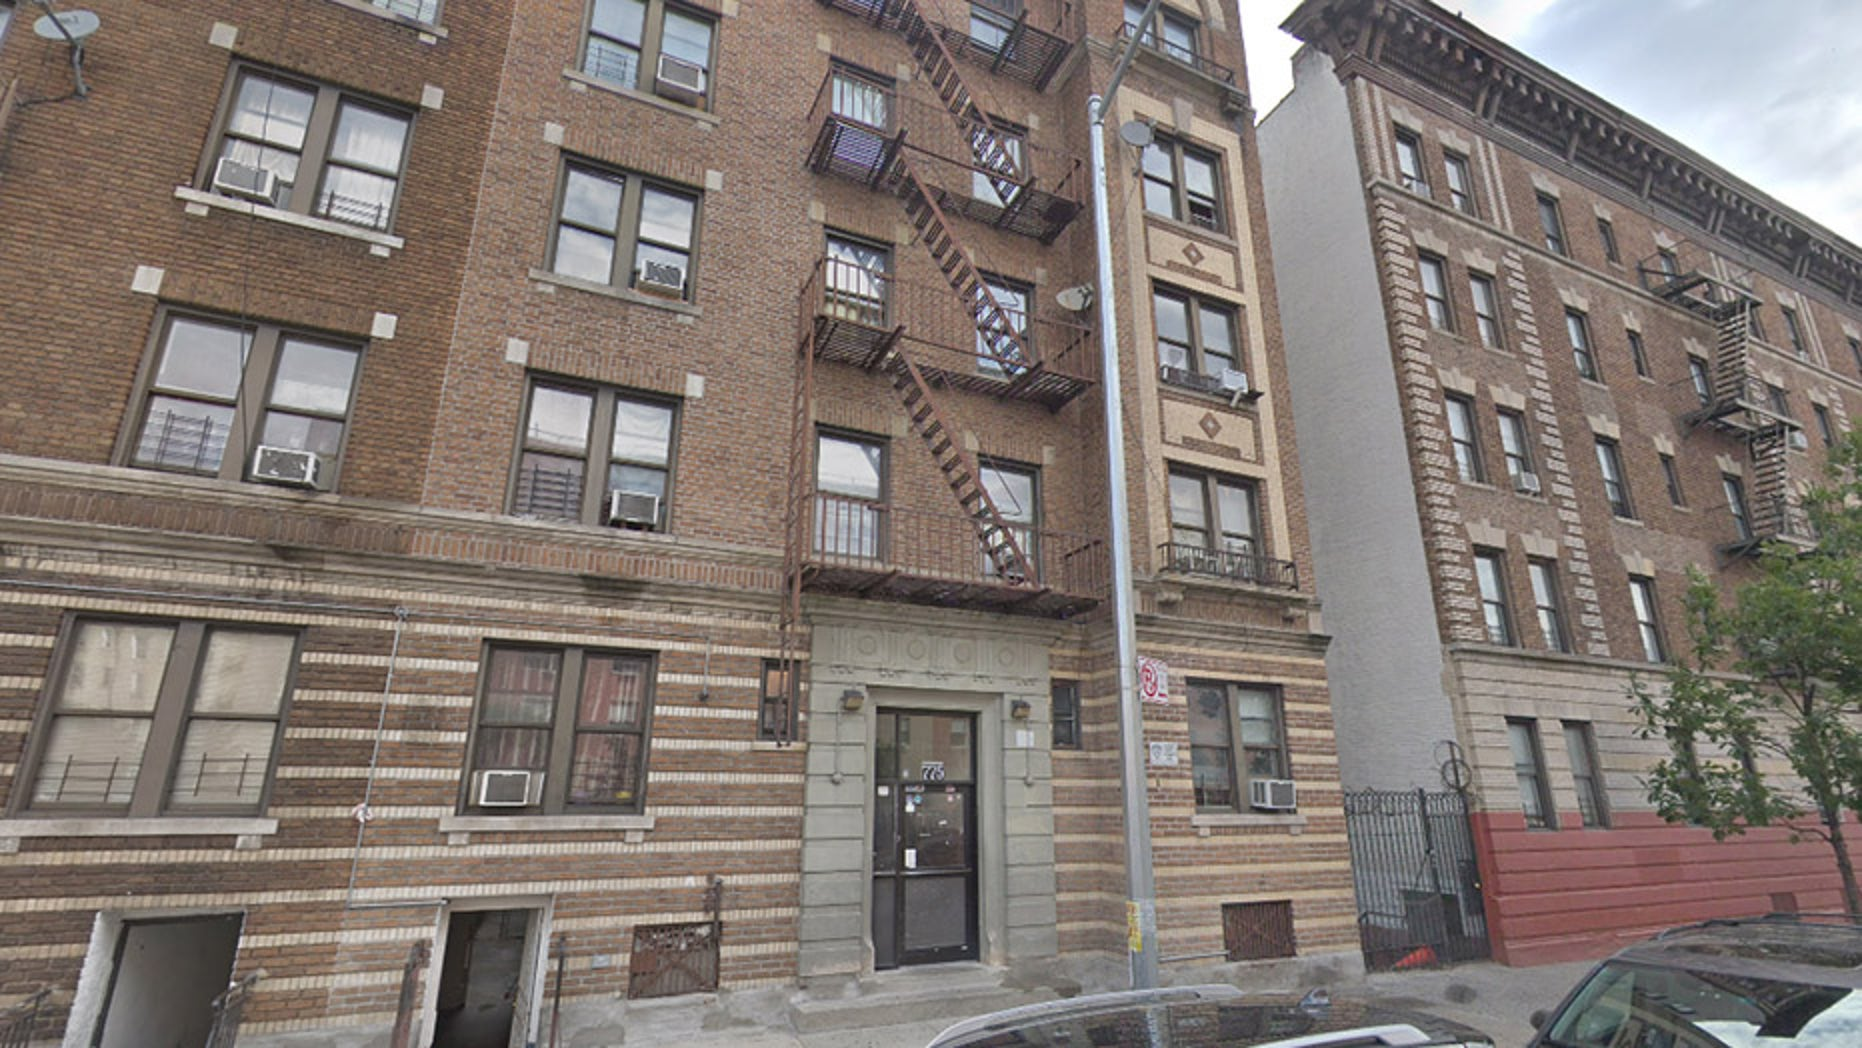 Marisol Ortiz and Alanch Del Orbe were found Sunday in this residential building in New York.